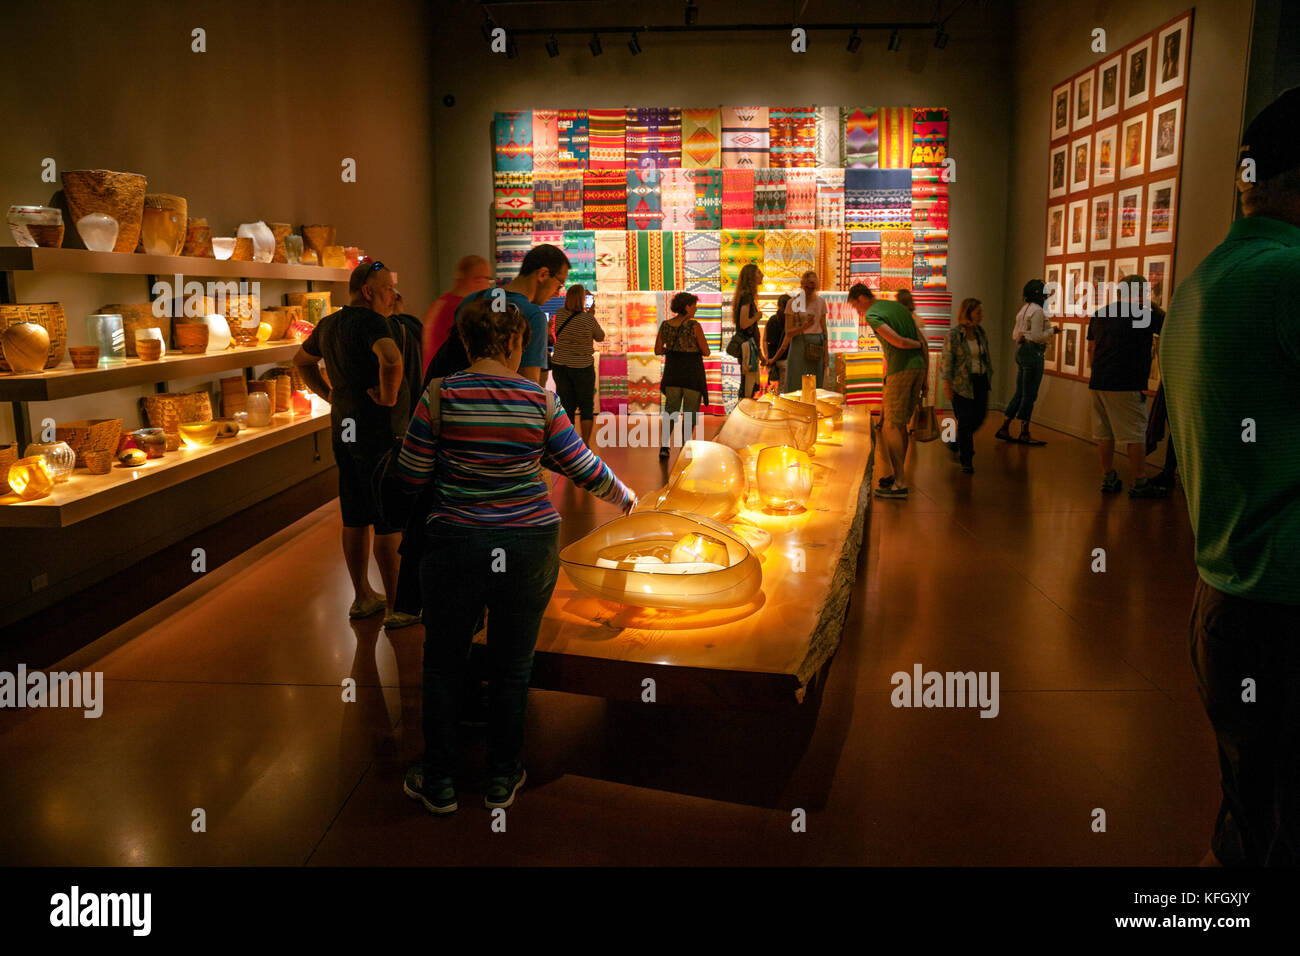 WA14106-00...WASHINGTON - Inside Chihuly Garden And Glass building. - Stock Image